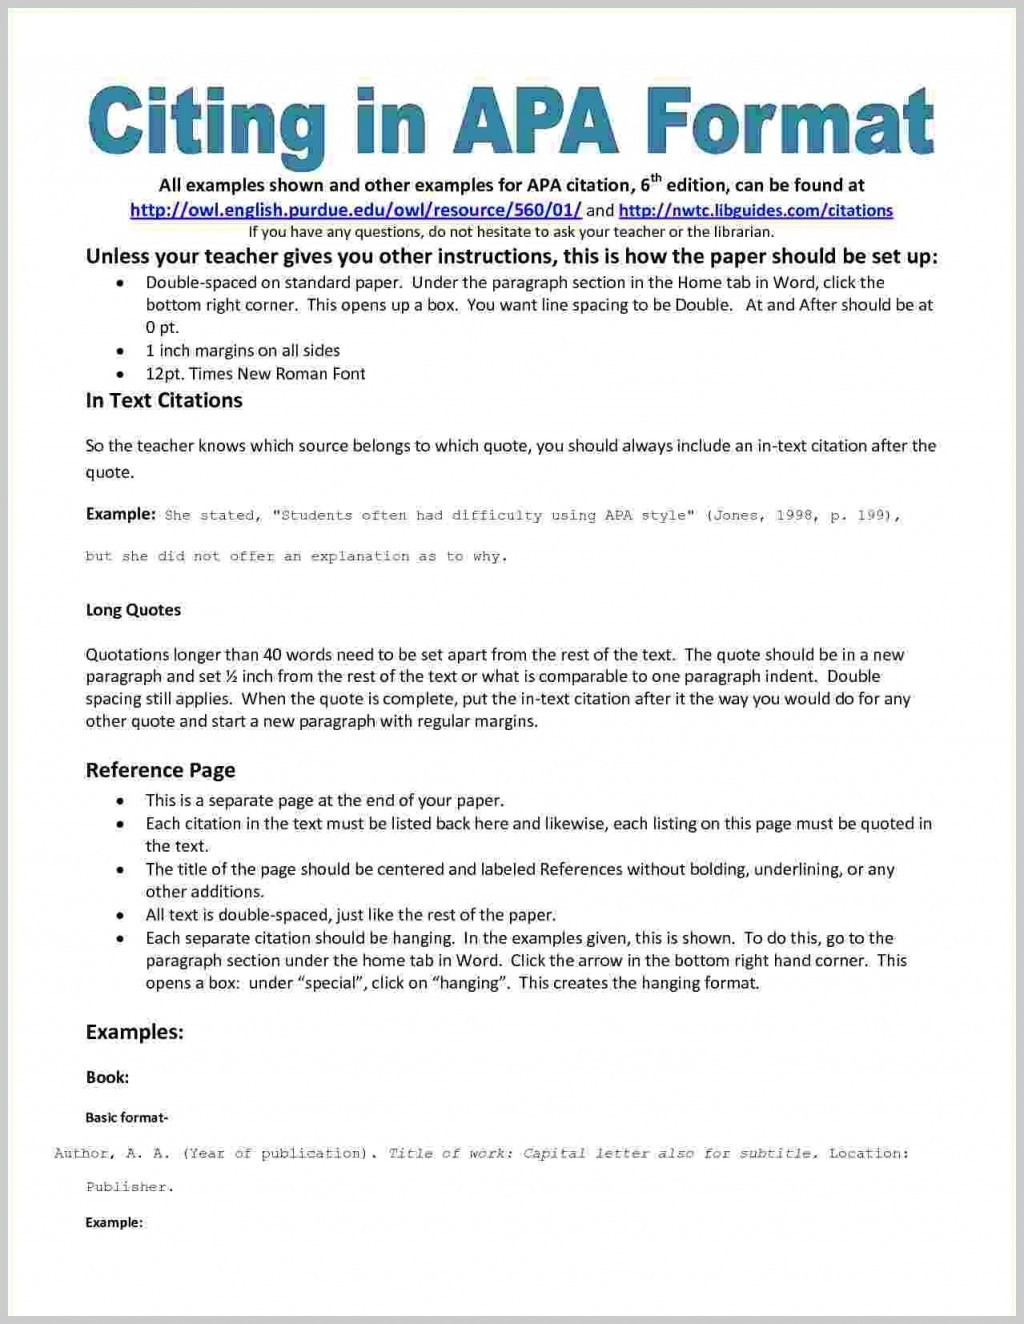 002 Research Paper Database Security Apa Style Reference In Text Citation Mla Examples Toreto Co Striking - Draft Papers Pdf Related Large